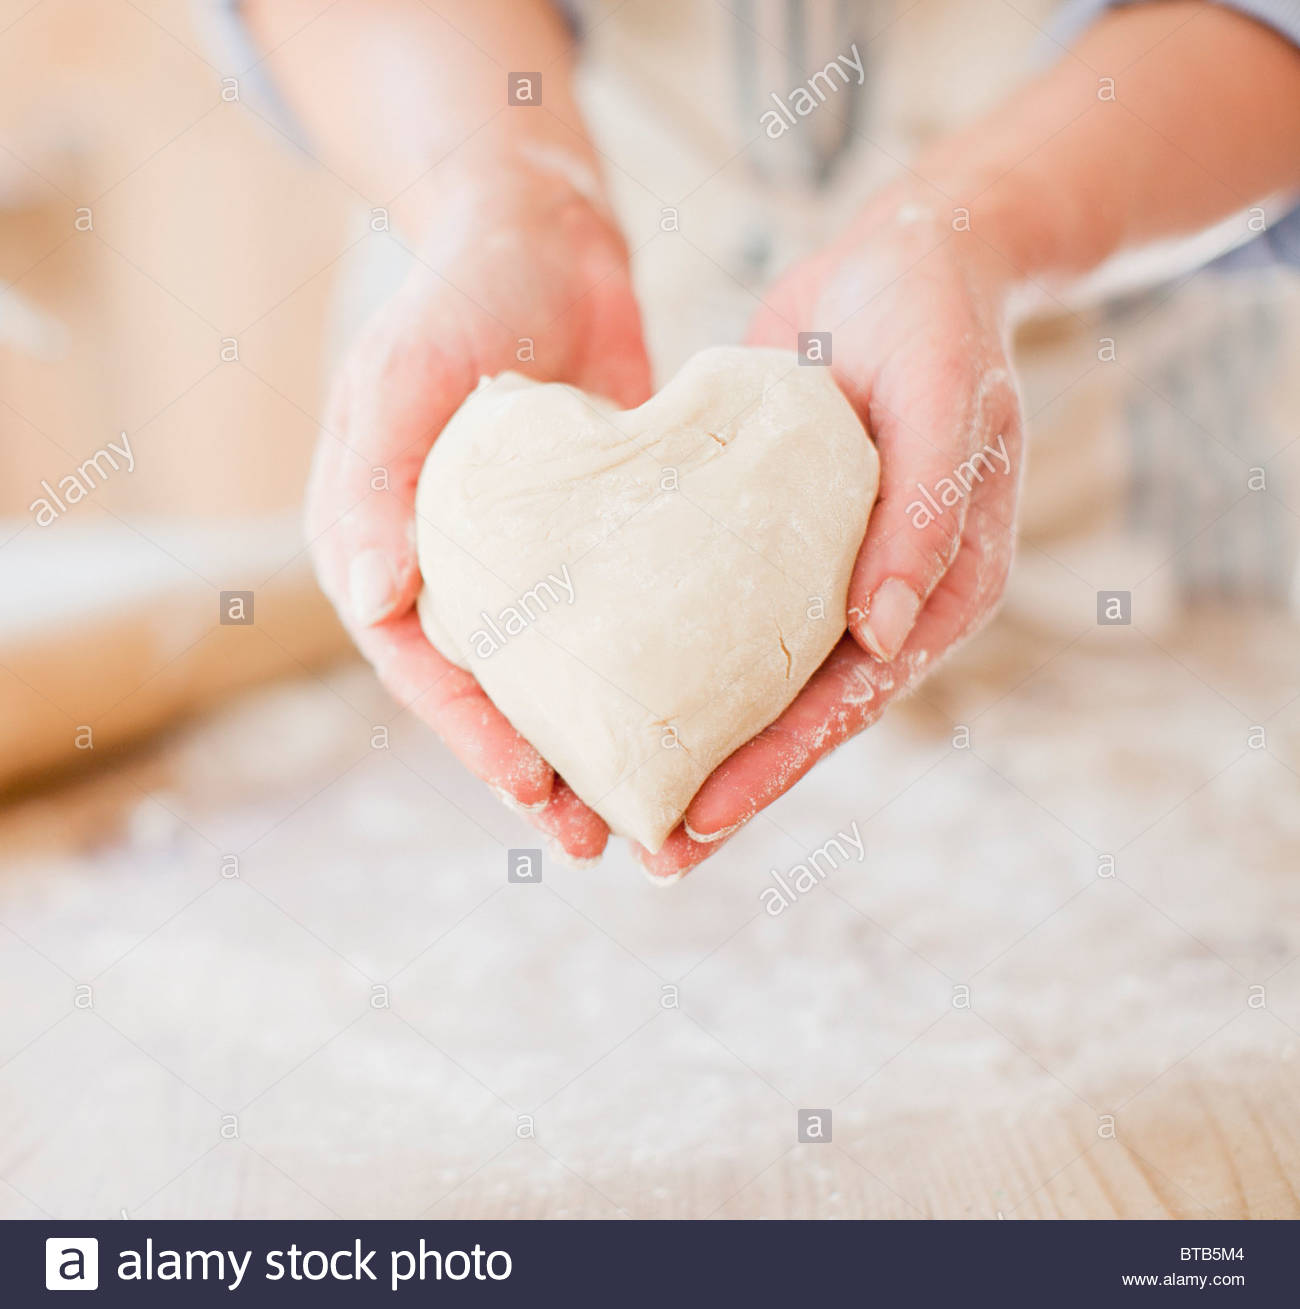 Close up of woman holding heart-shape dough - Stock Image